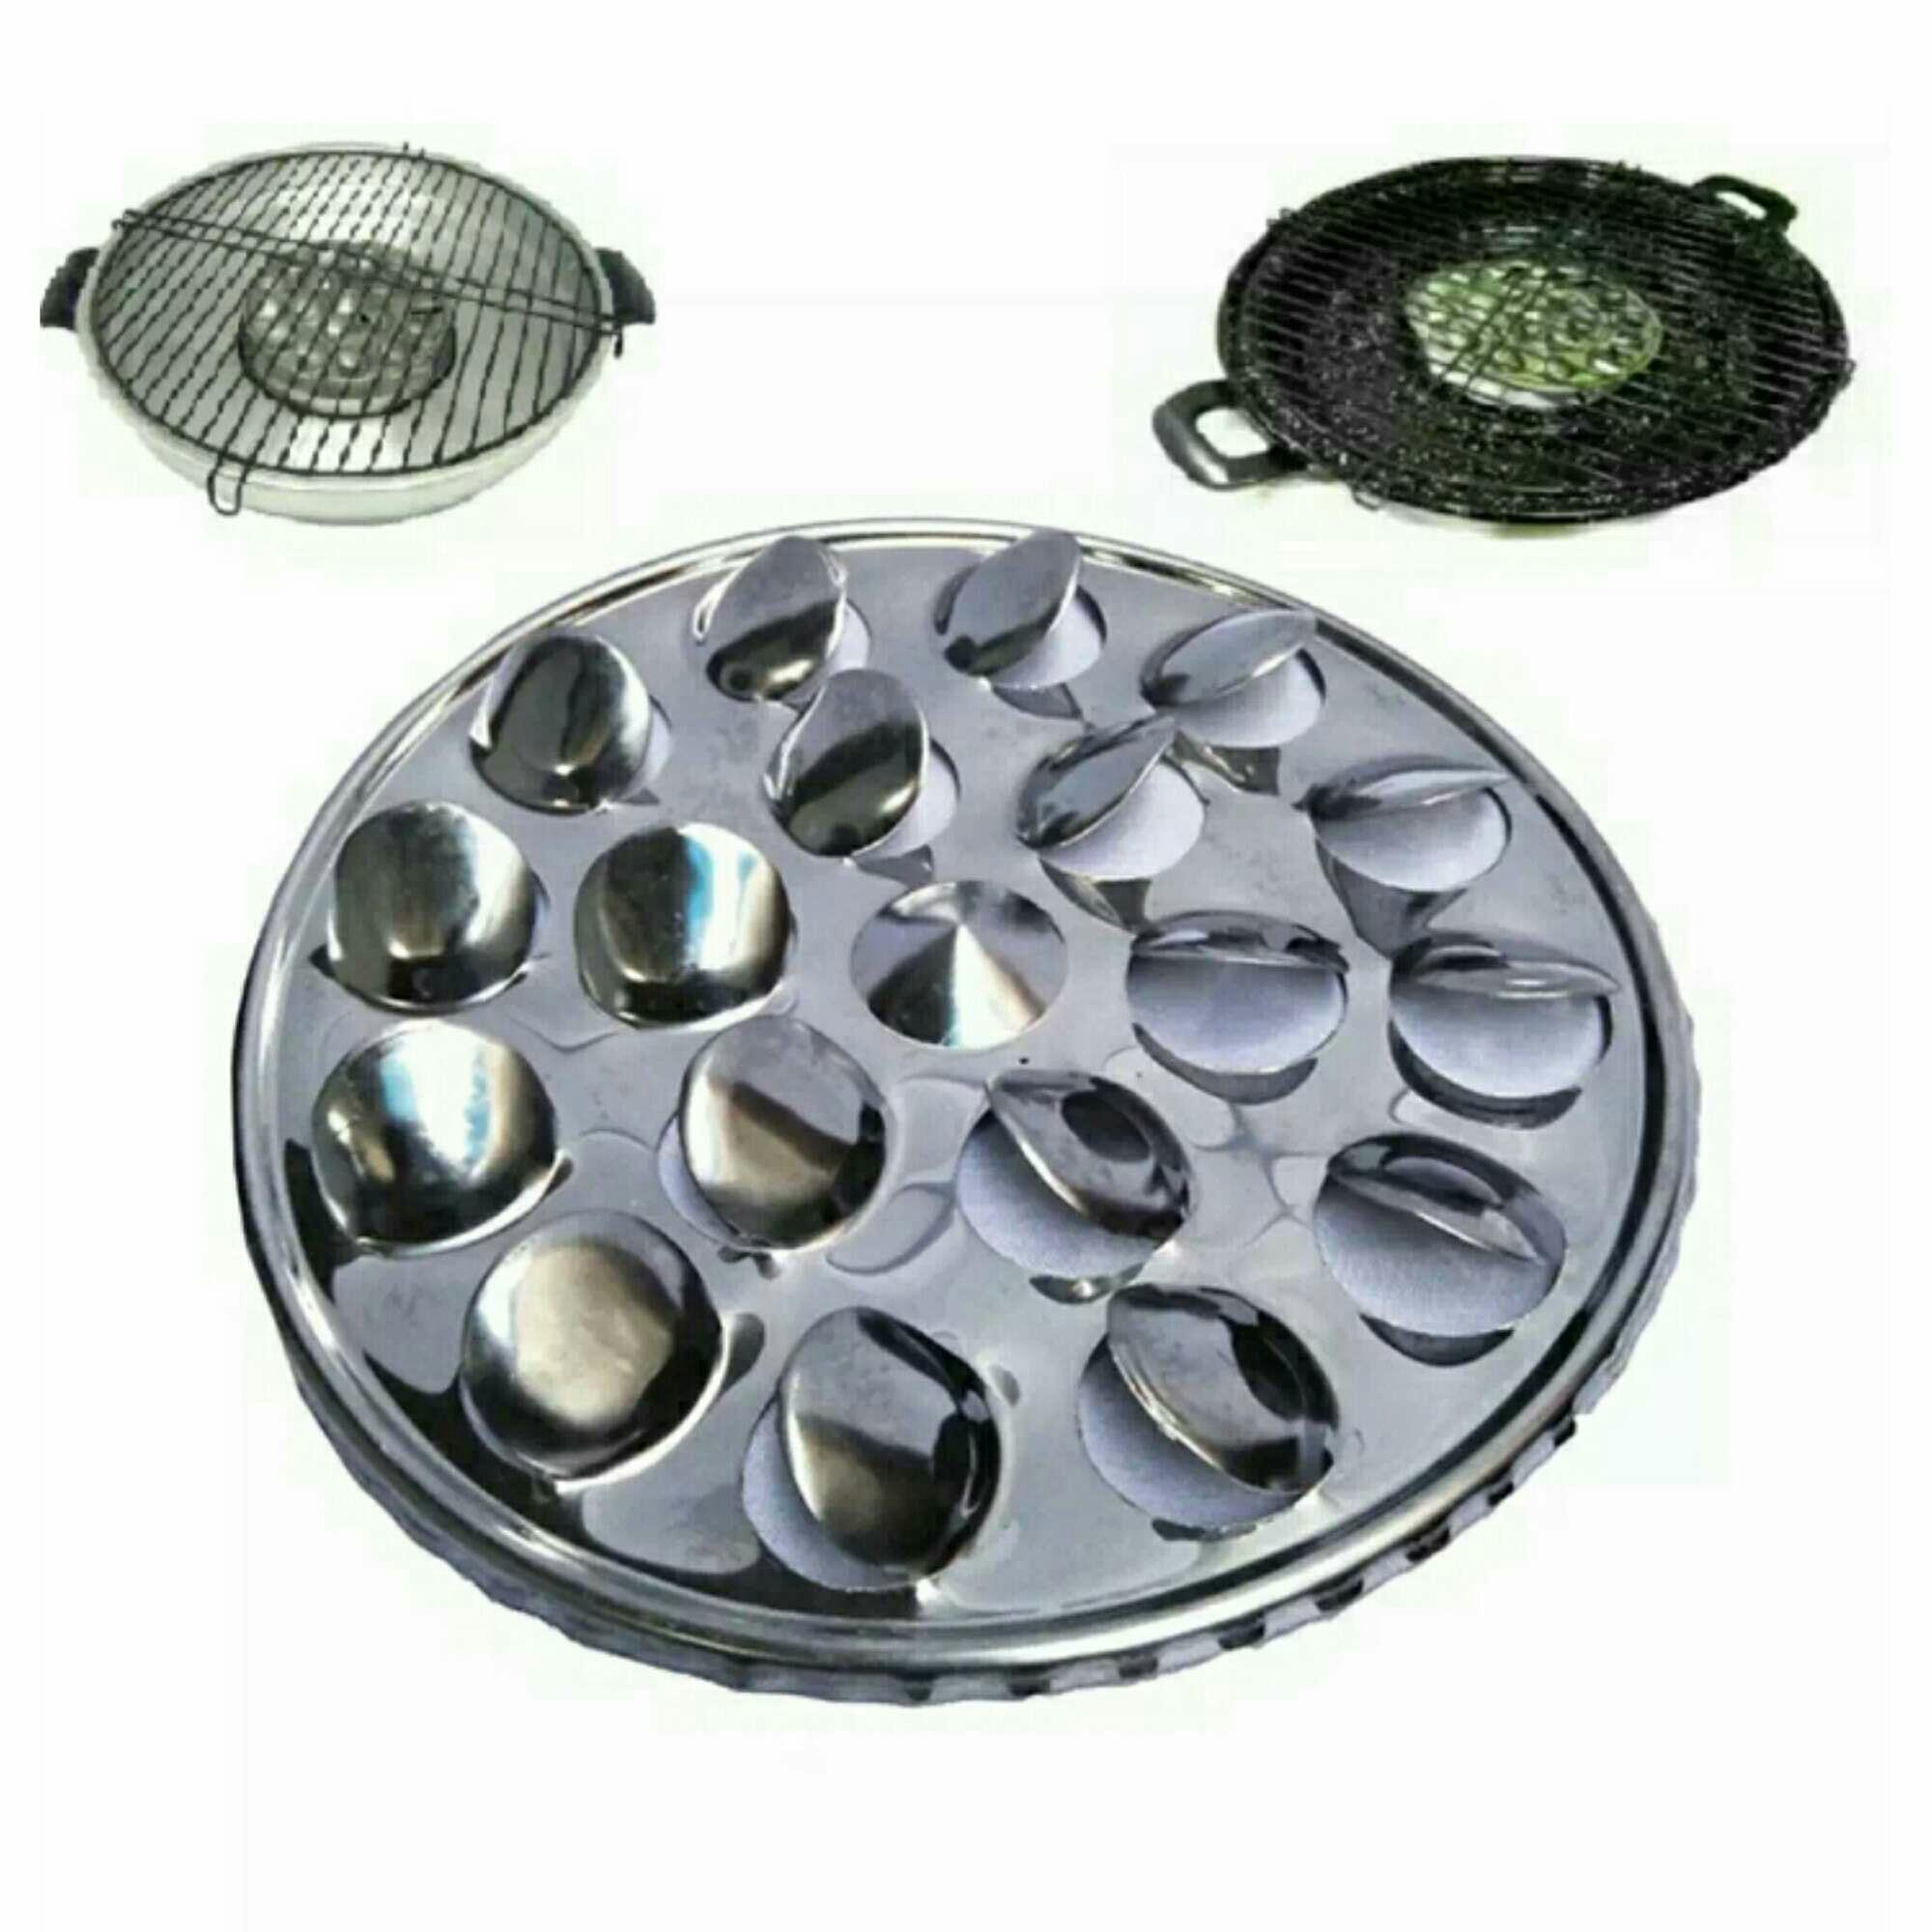 Kelebihan Refill Sparepart Elemen Piringan Pemanggang Fancy Grill Maspion Enamel Magic Roaster Restu Stanlies Steel